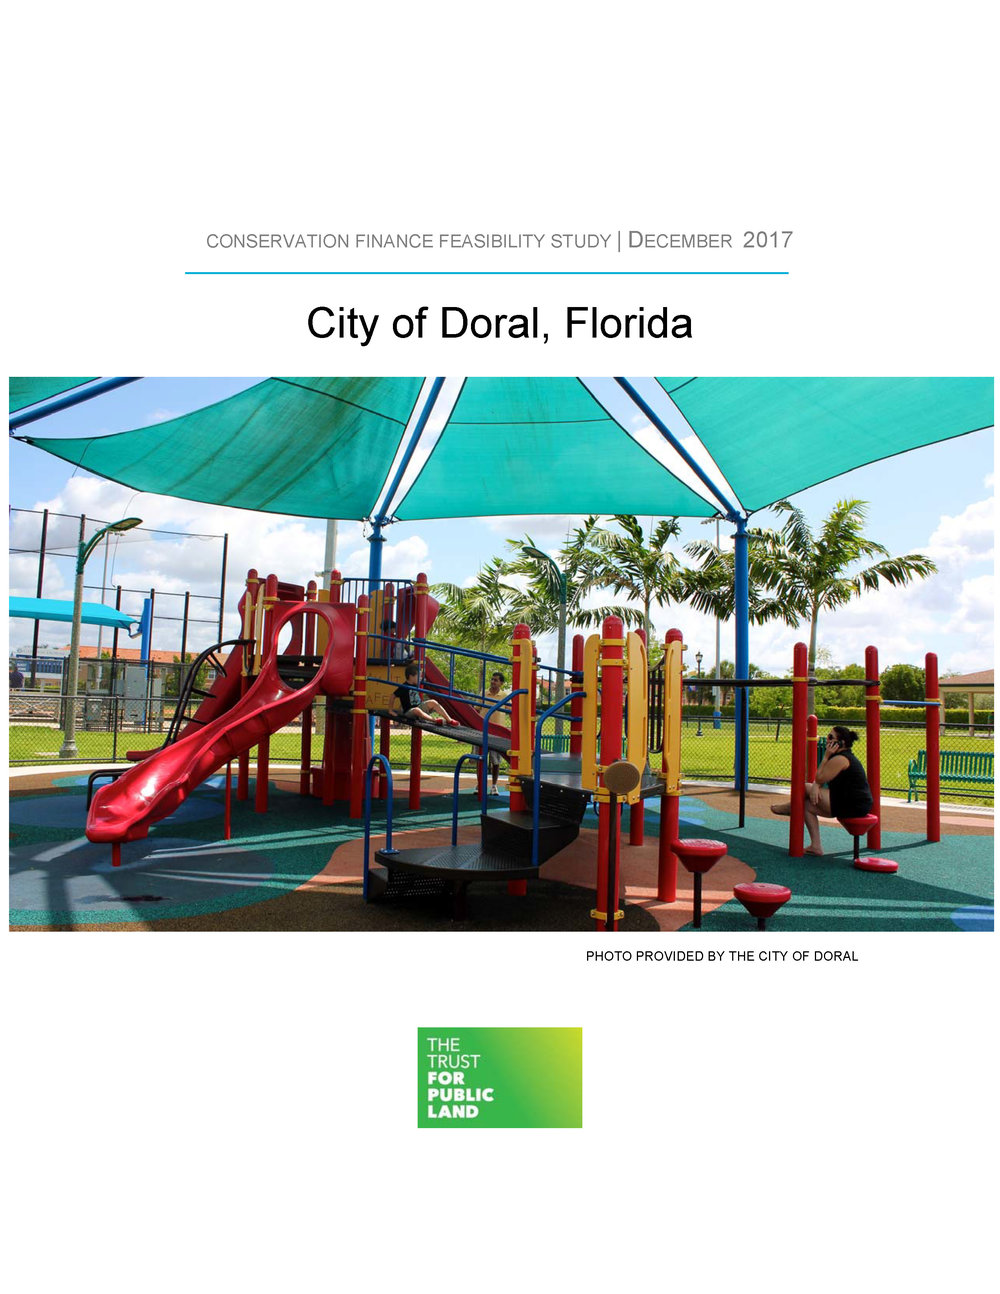 Pages from (FINAL) Doral Florida TPL Feasibility Study Final Dec 2017.jpg